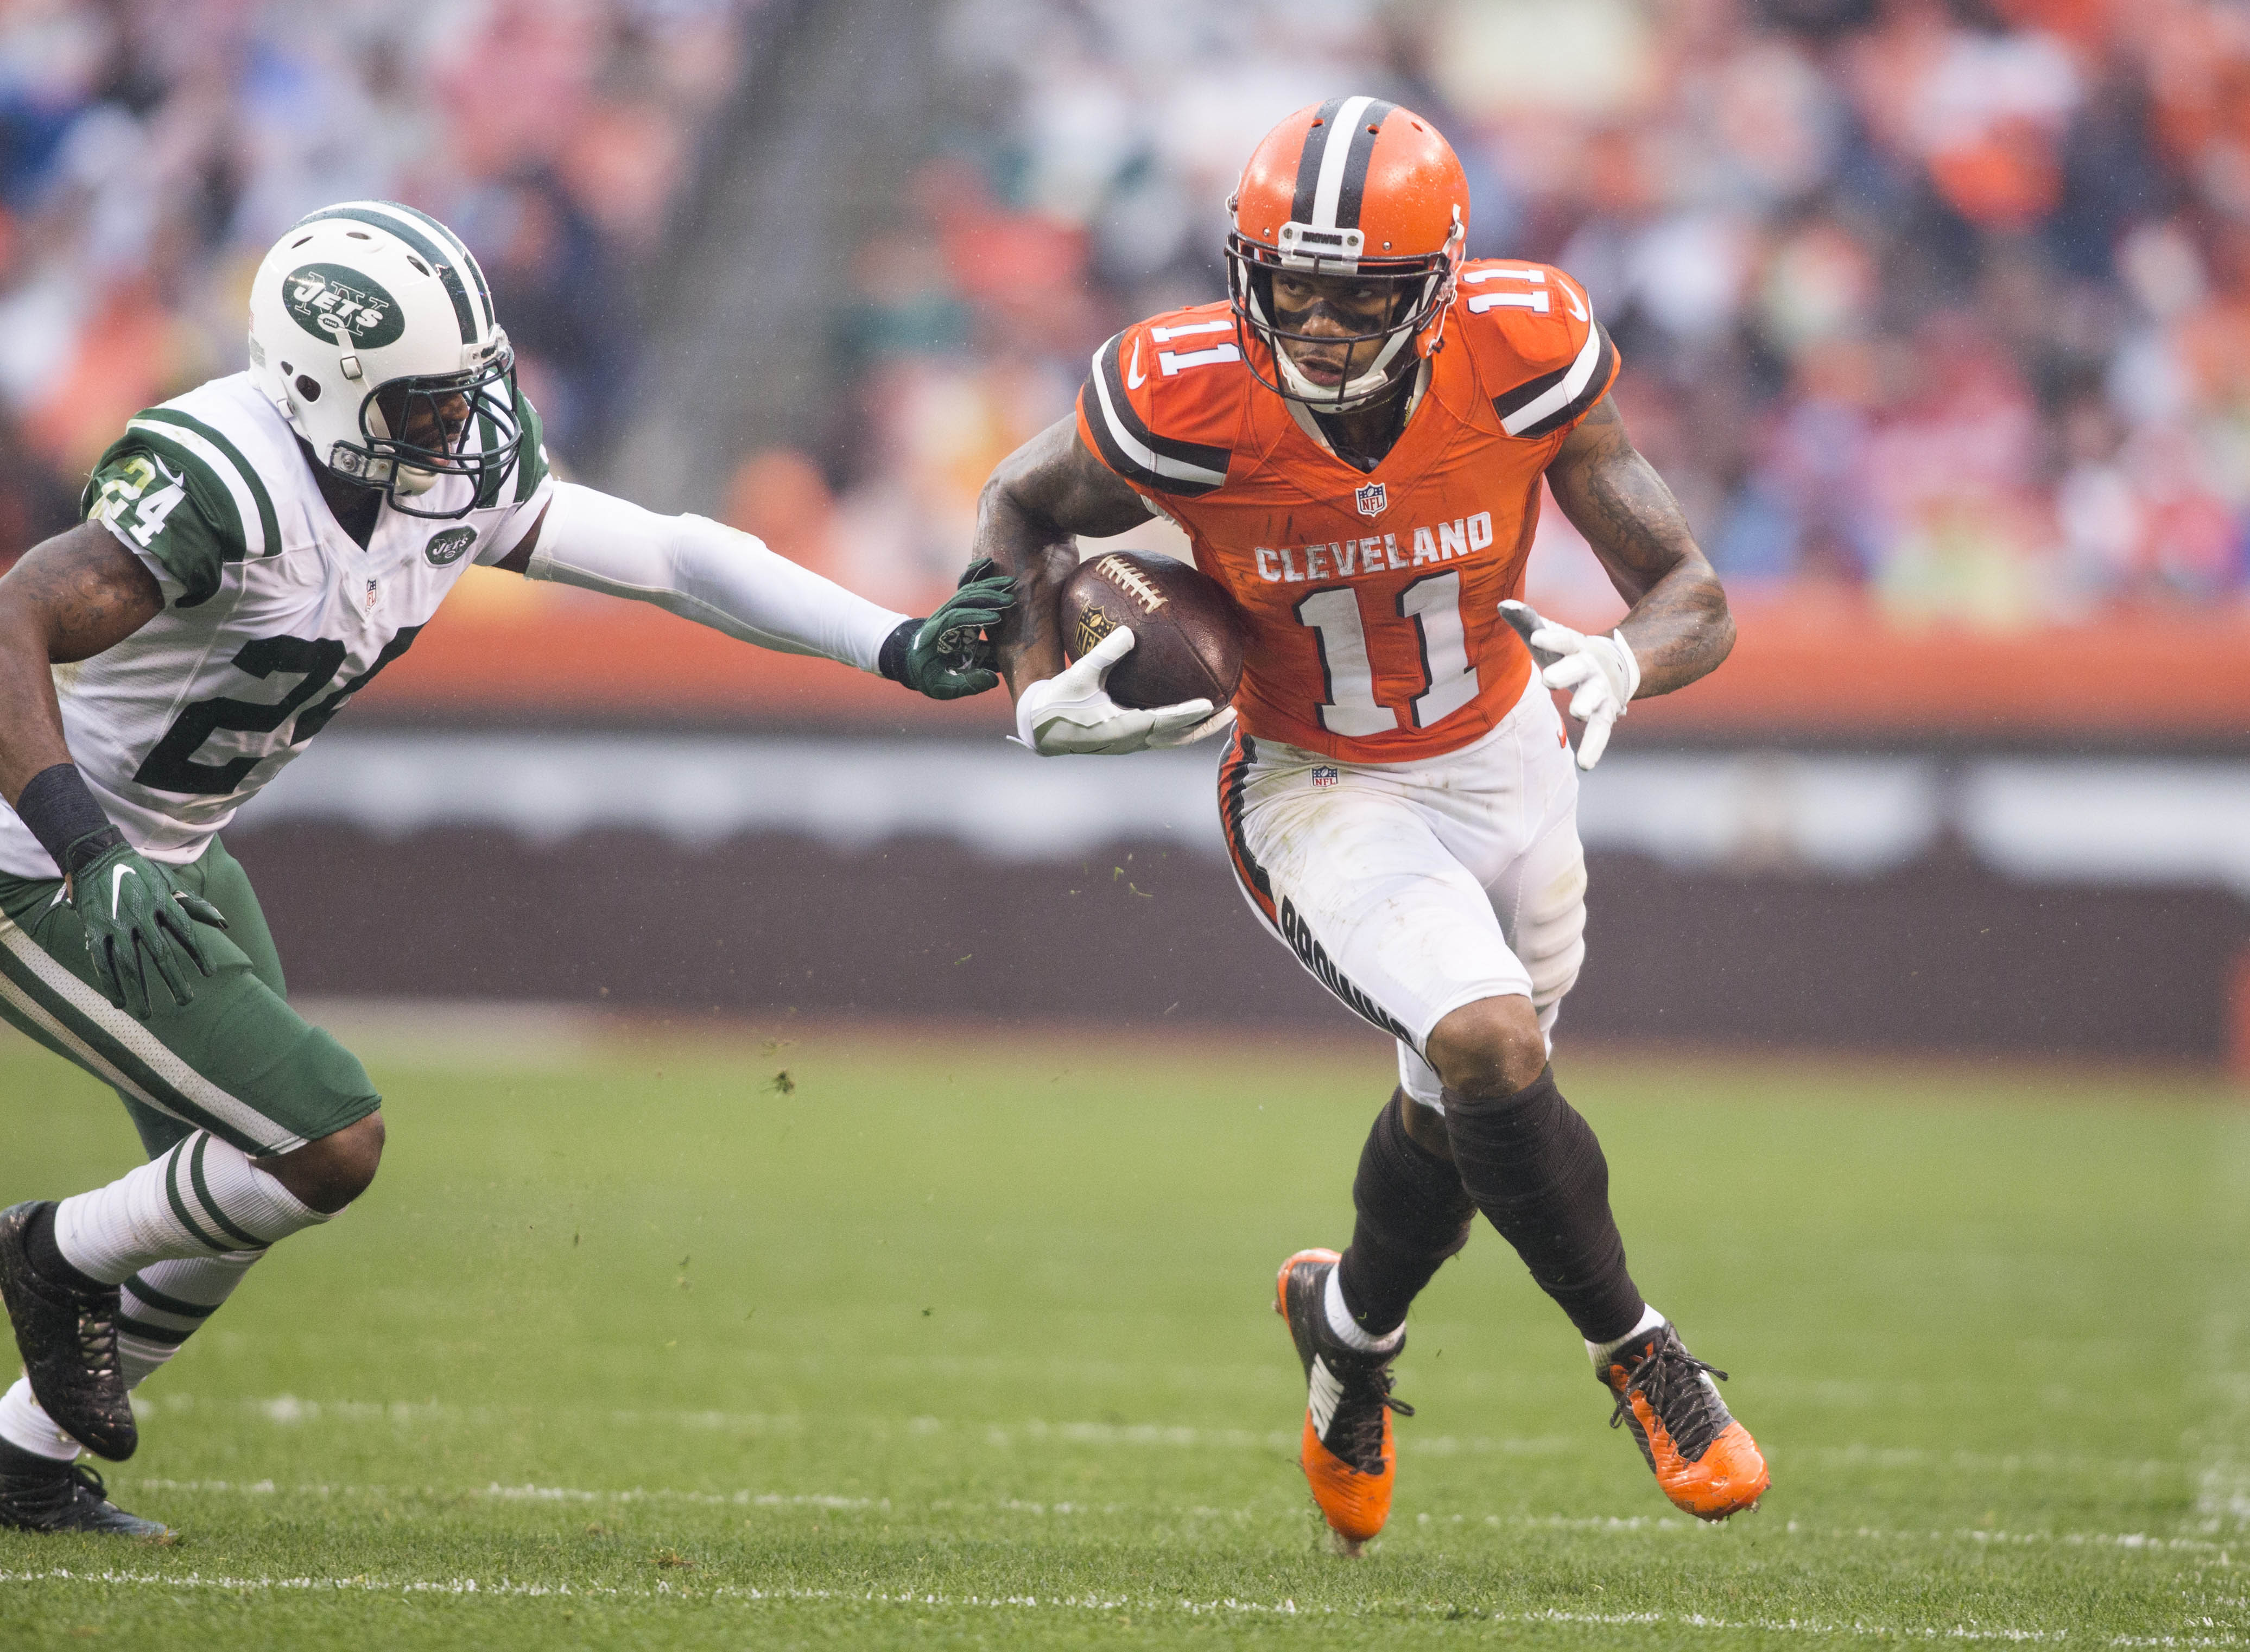 9642965-nfl-new-york-jets-at-cleveland-browns